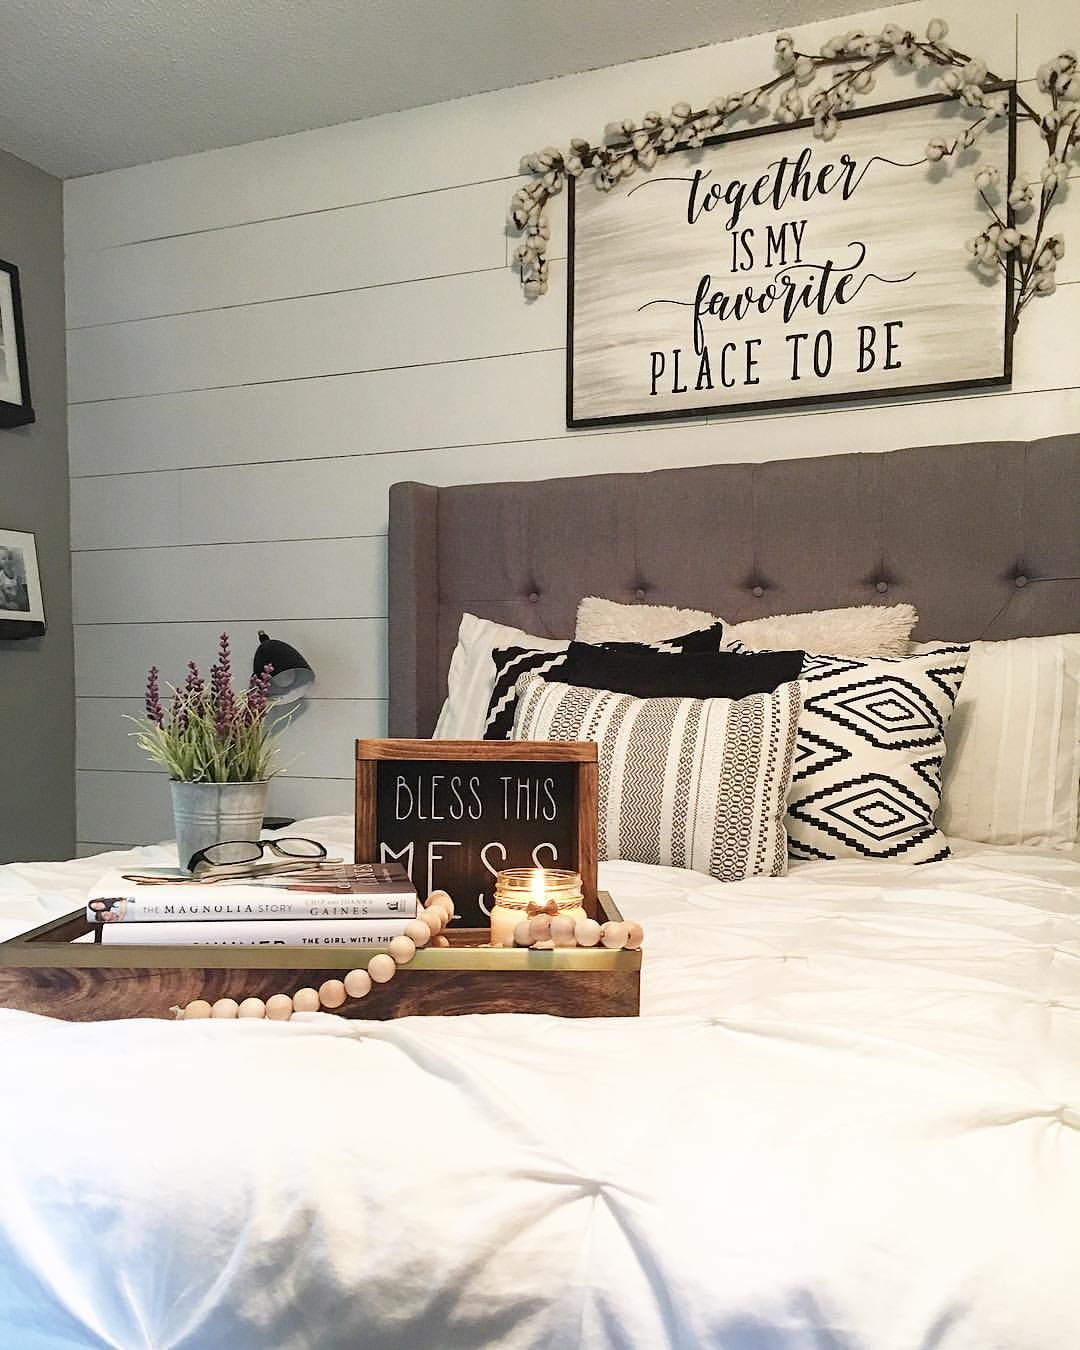 Modern farmhouse style decorating ideas on  budget decor for master bedroom also pin by sparkleshinylove fashion  lifestyle blog home rh pinterest